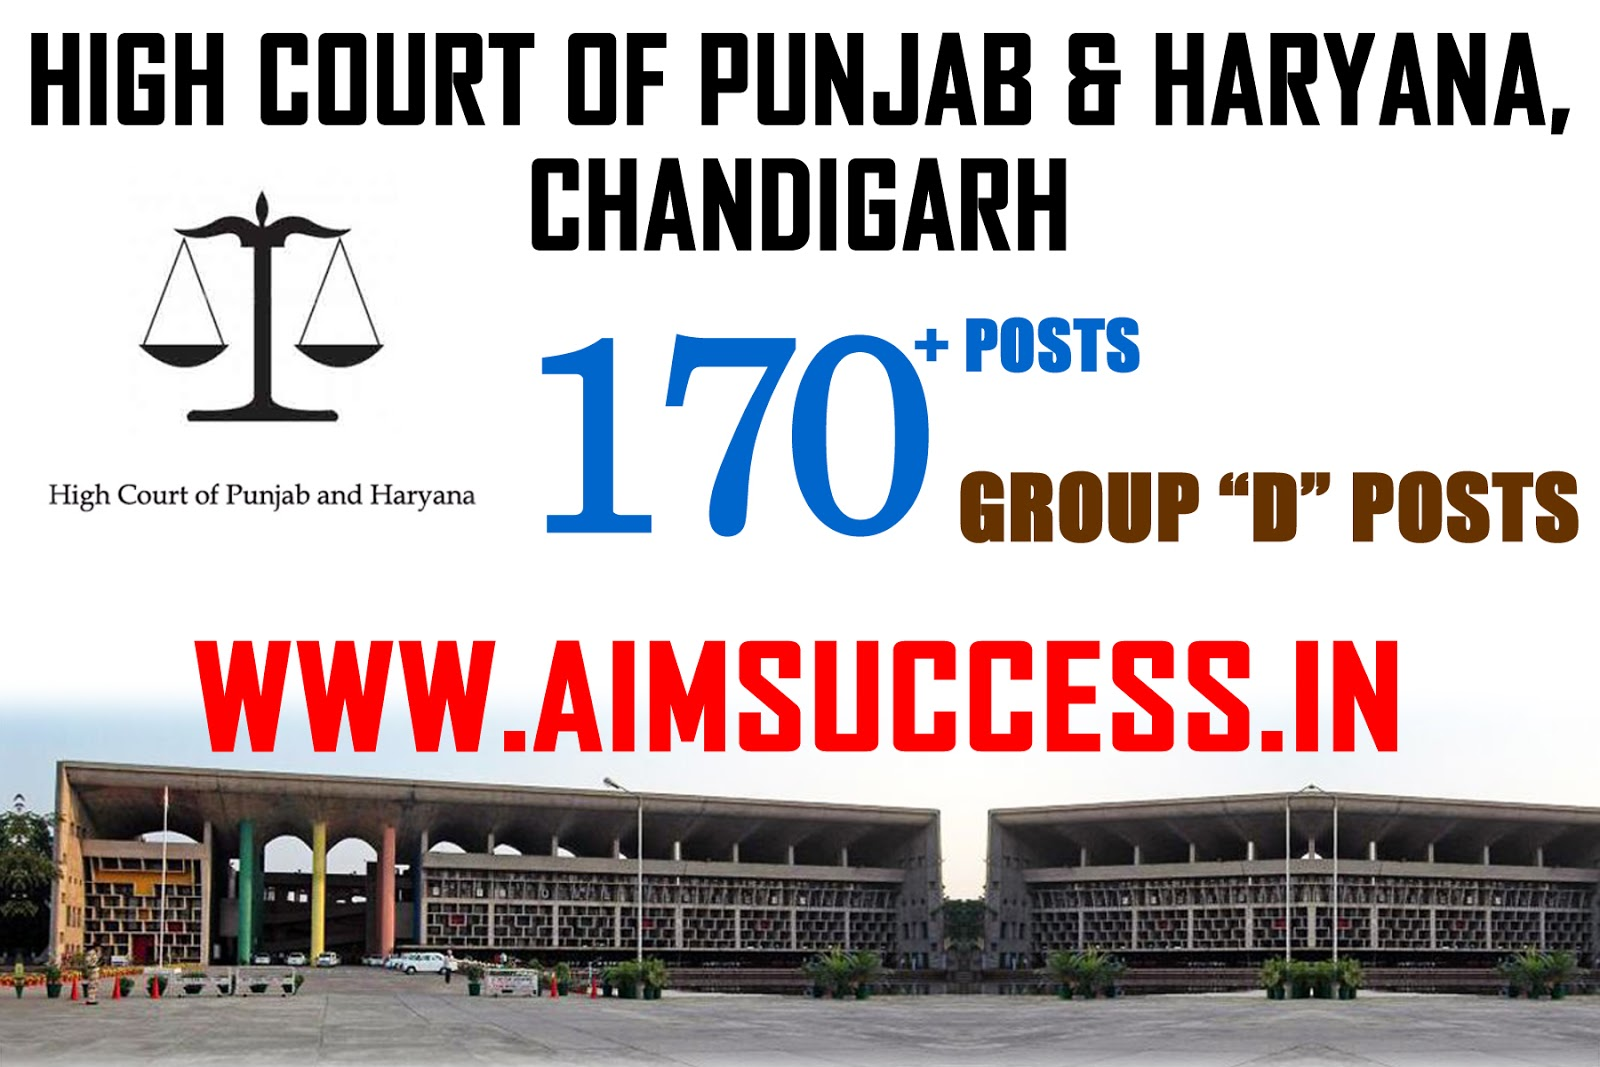 punjab and haryana high court online form